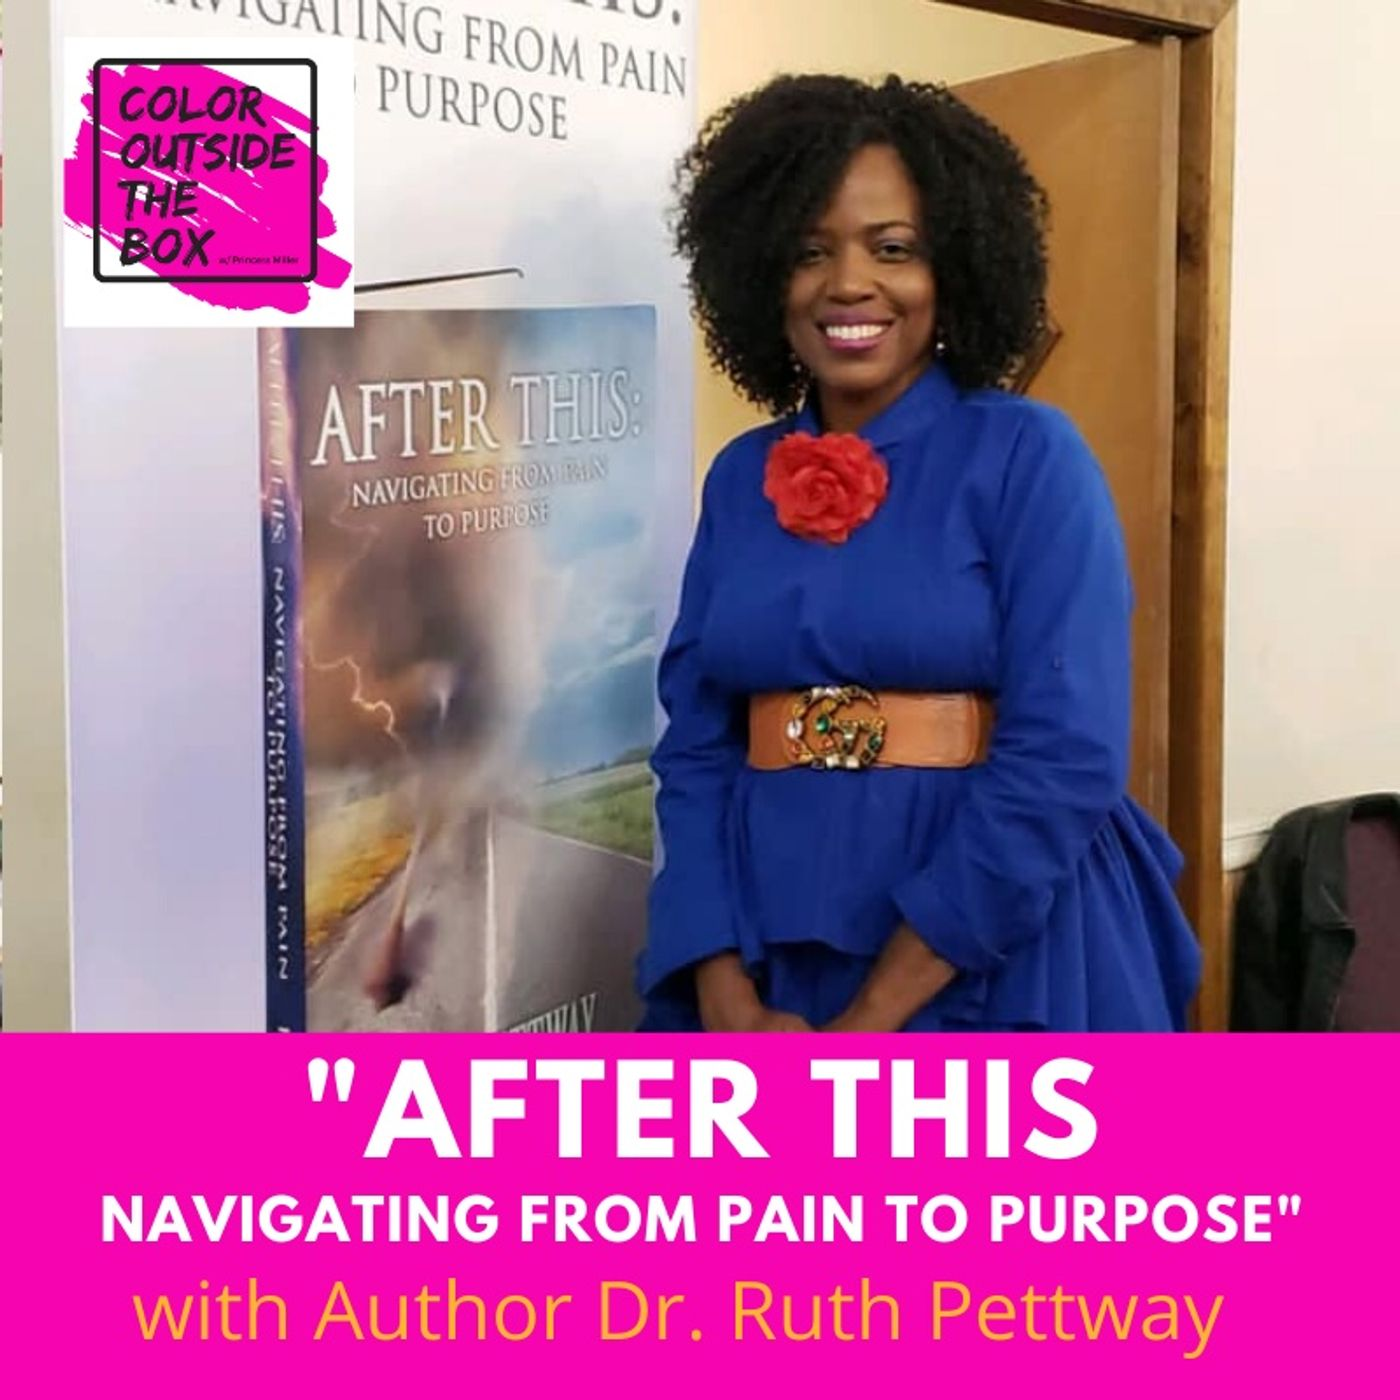 After the Storm Navigating from Pain to Purpose with Dr. Ruth Pettway